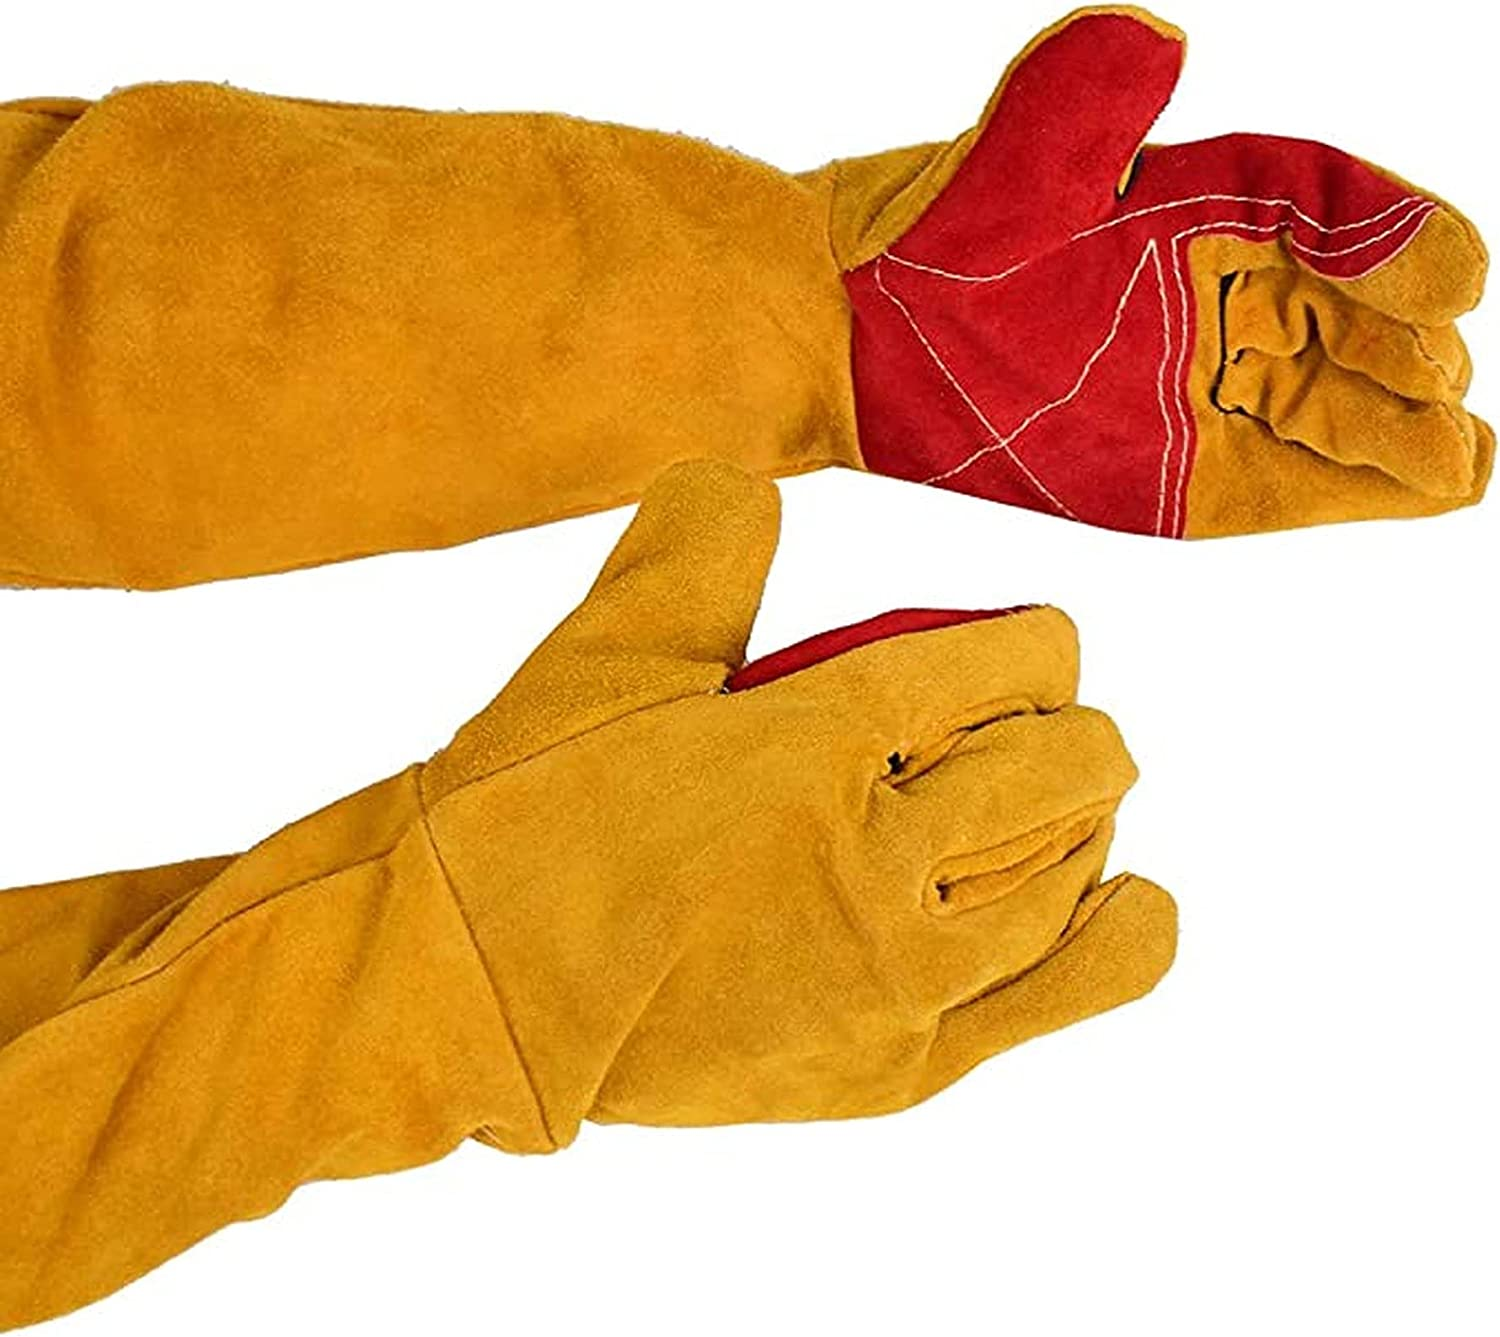 Dzhzuj Welding Special price for a limited time Super special price Gloves Safety Protective